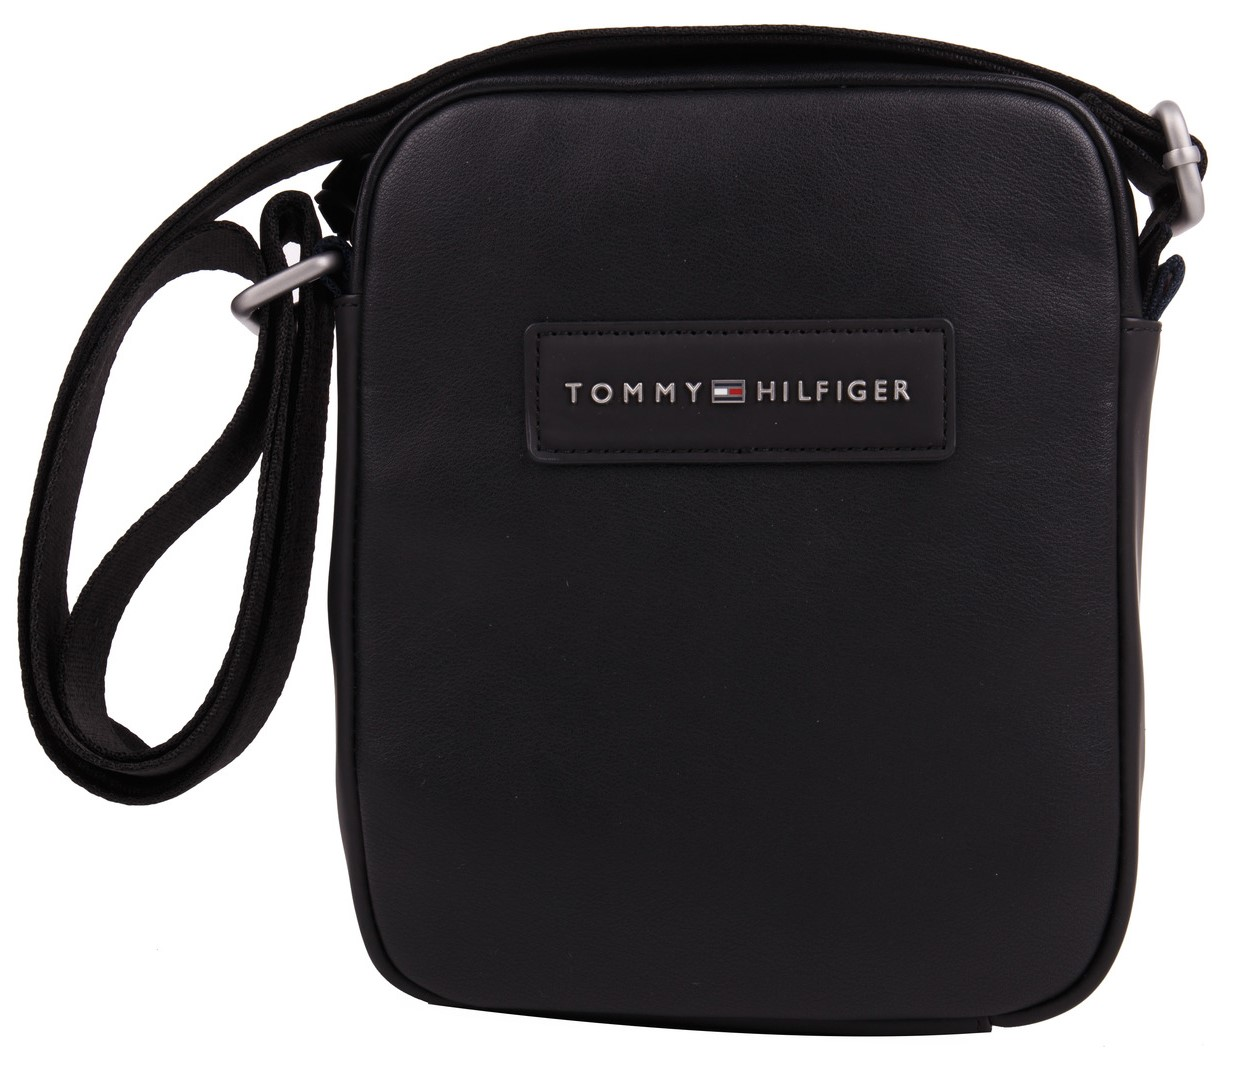 ae8bd25cc0 Tommy Hilfiger čierna pánska crossbody taška TH City Mini Reporter ...